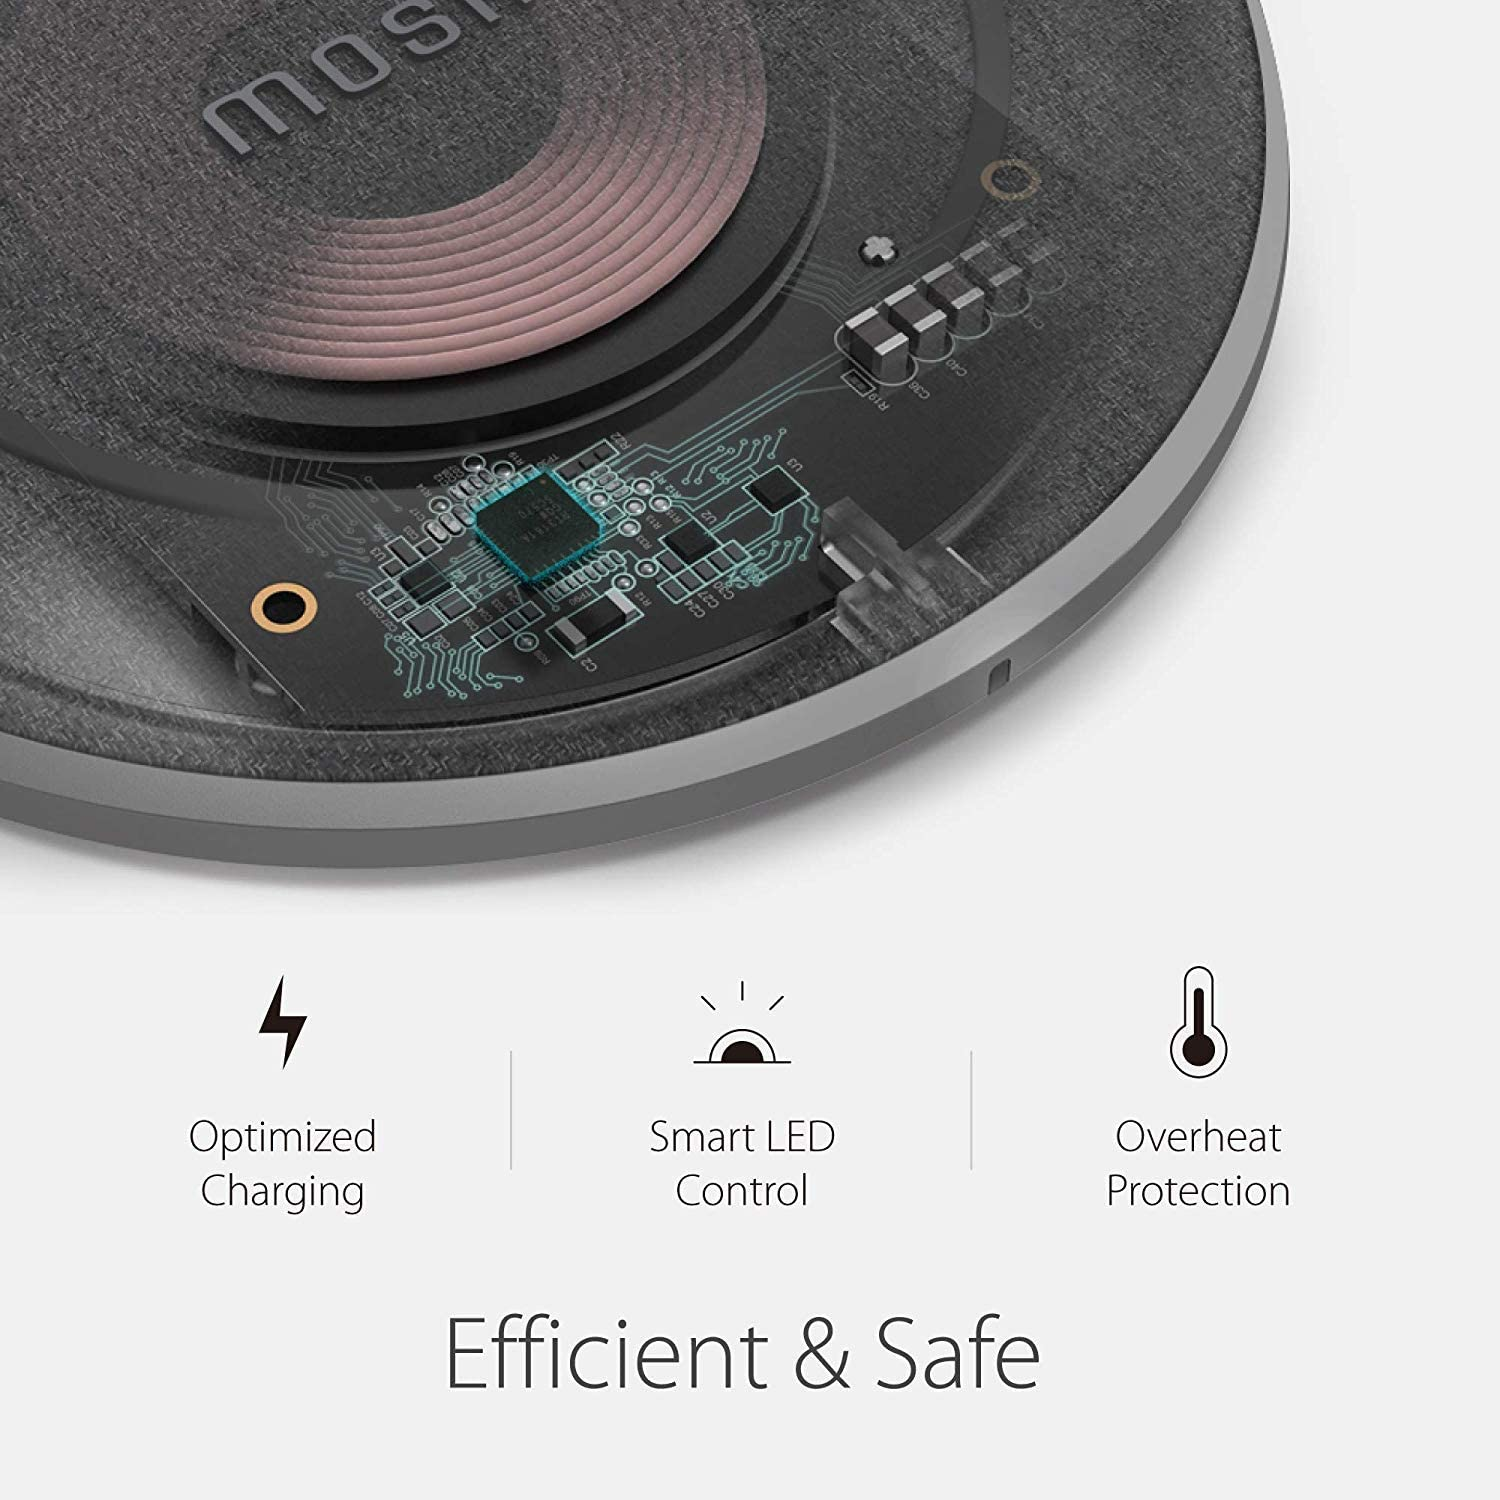 Fast-Charging Up to 10W Compatible with AirPods//AirPods Pro Moshi Otto Q Wireless Charger Qi Certified iPhone SE 2//11//11 Pro//Pro Max//XR//XS Max//XS//X//8//8+ No AC Adapter Galaxy S10//S9//S8//Note 10//9//8